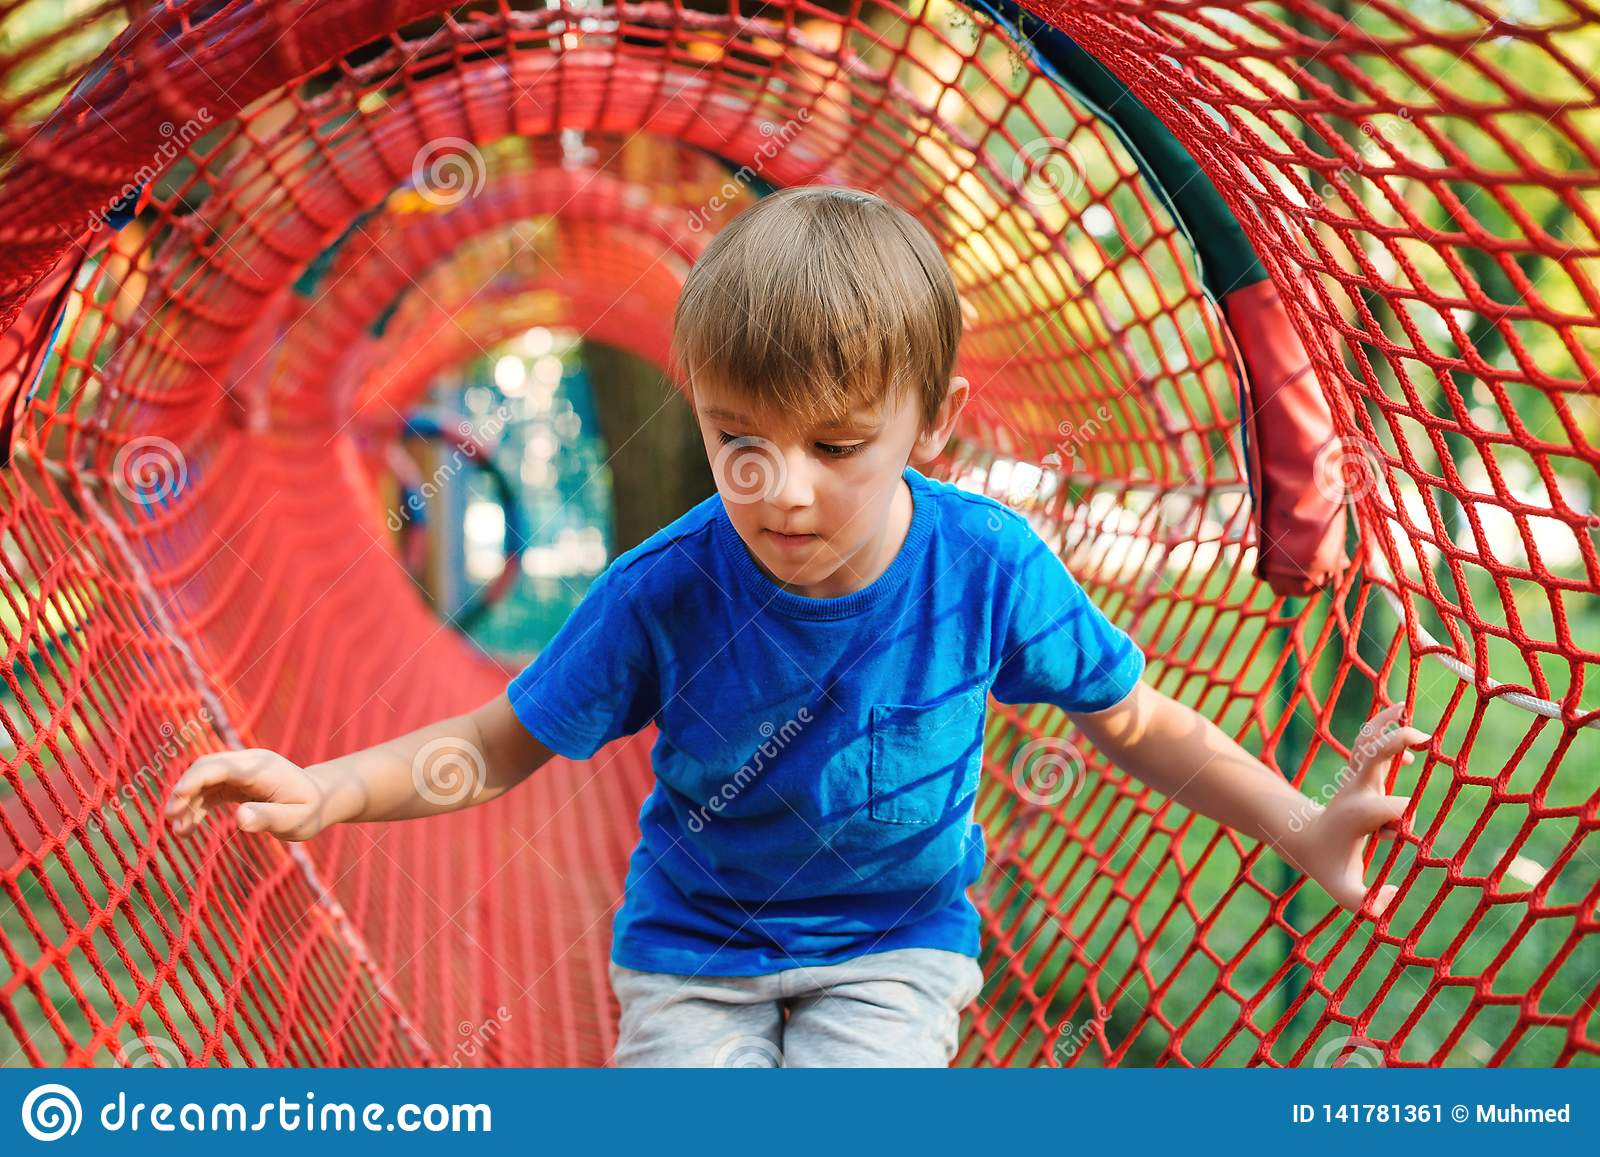 Cute little boy playing outdoors. Child having fun in tunnel at the modern playground. Happy childhood. Summer holidays